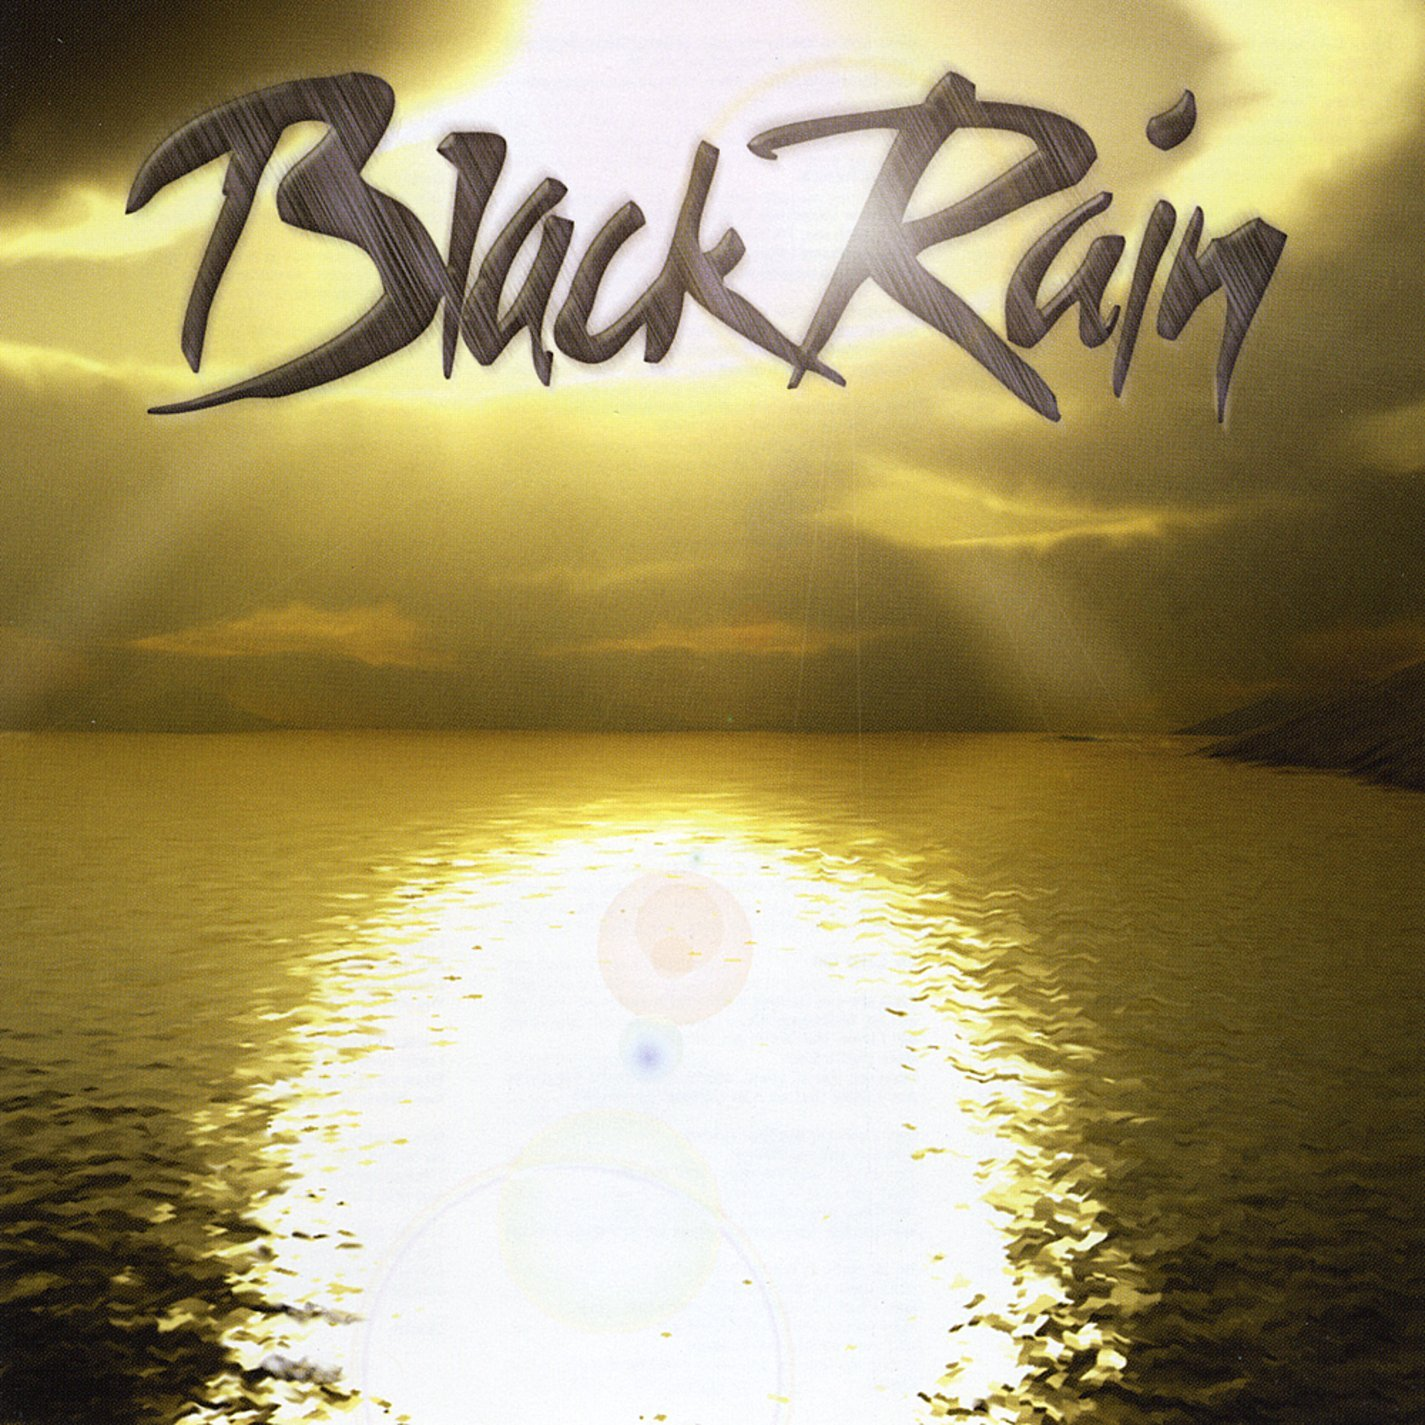 BLACK RAIN (USA) - Black Rain (1993/2003) melodic rock